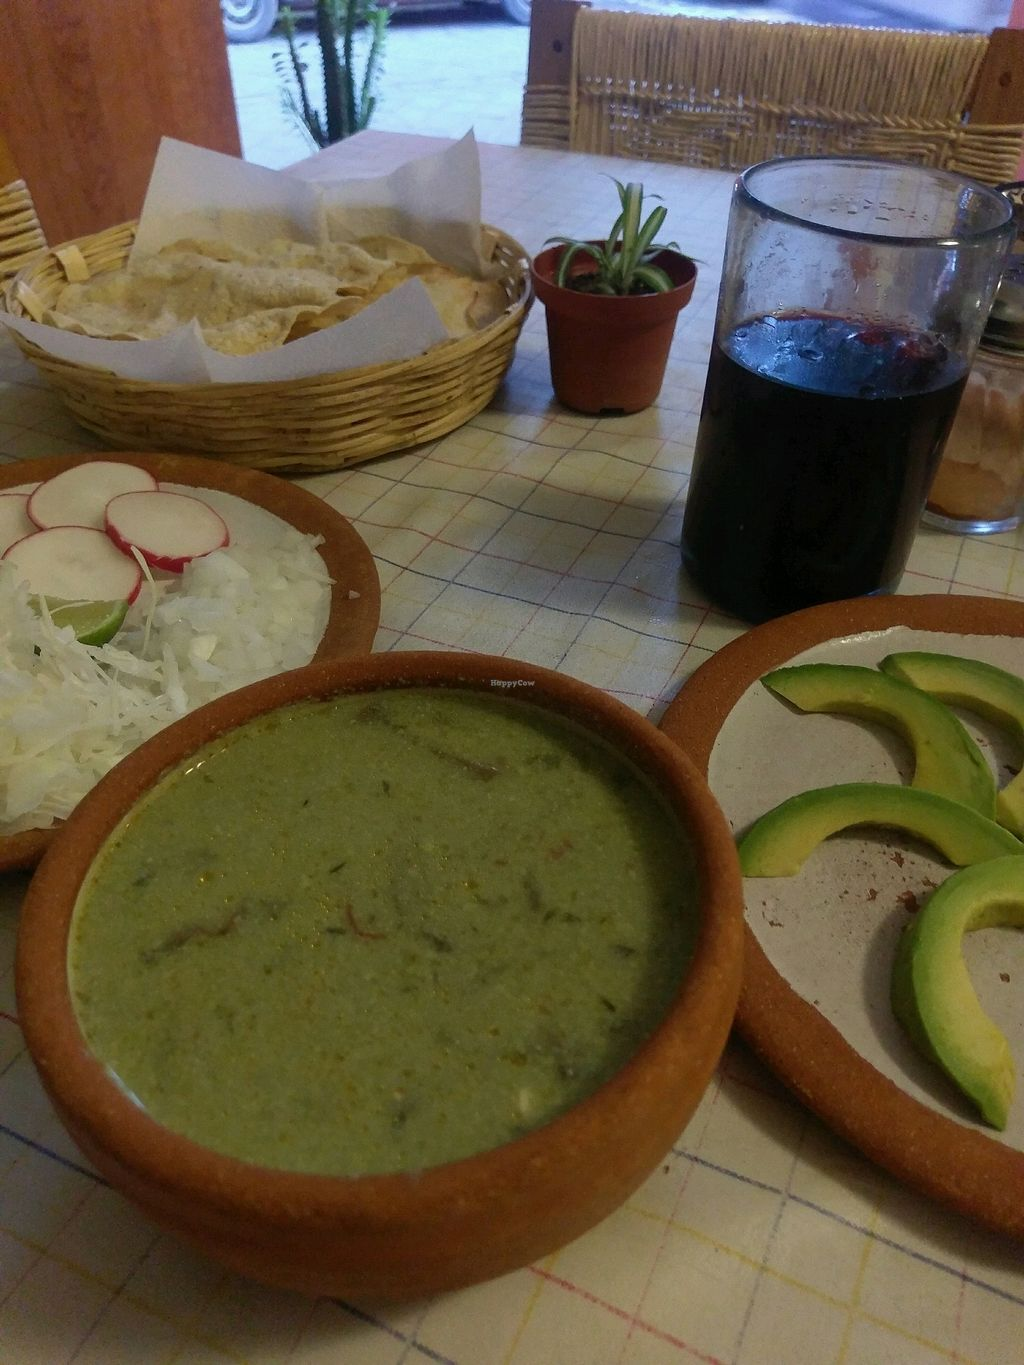 """Photo of Cabuche  by <a href=""""/members/profile/amylorelle"""">amylorelle</a> <br/>vegan soup with extra avocado, comes with salad bits and crisp bread <br/> September 17, 2017  - <a href='/contact/abuse/image/82103/305185'>Report</a>"""